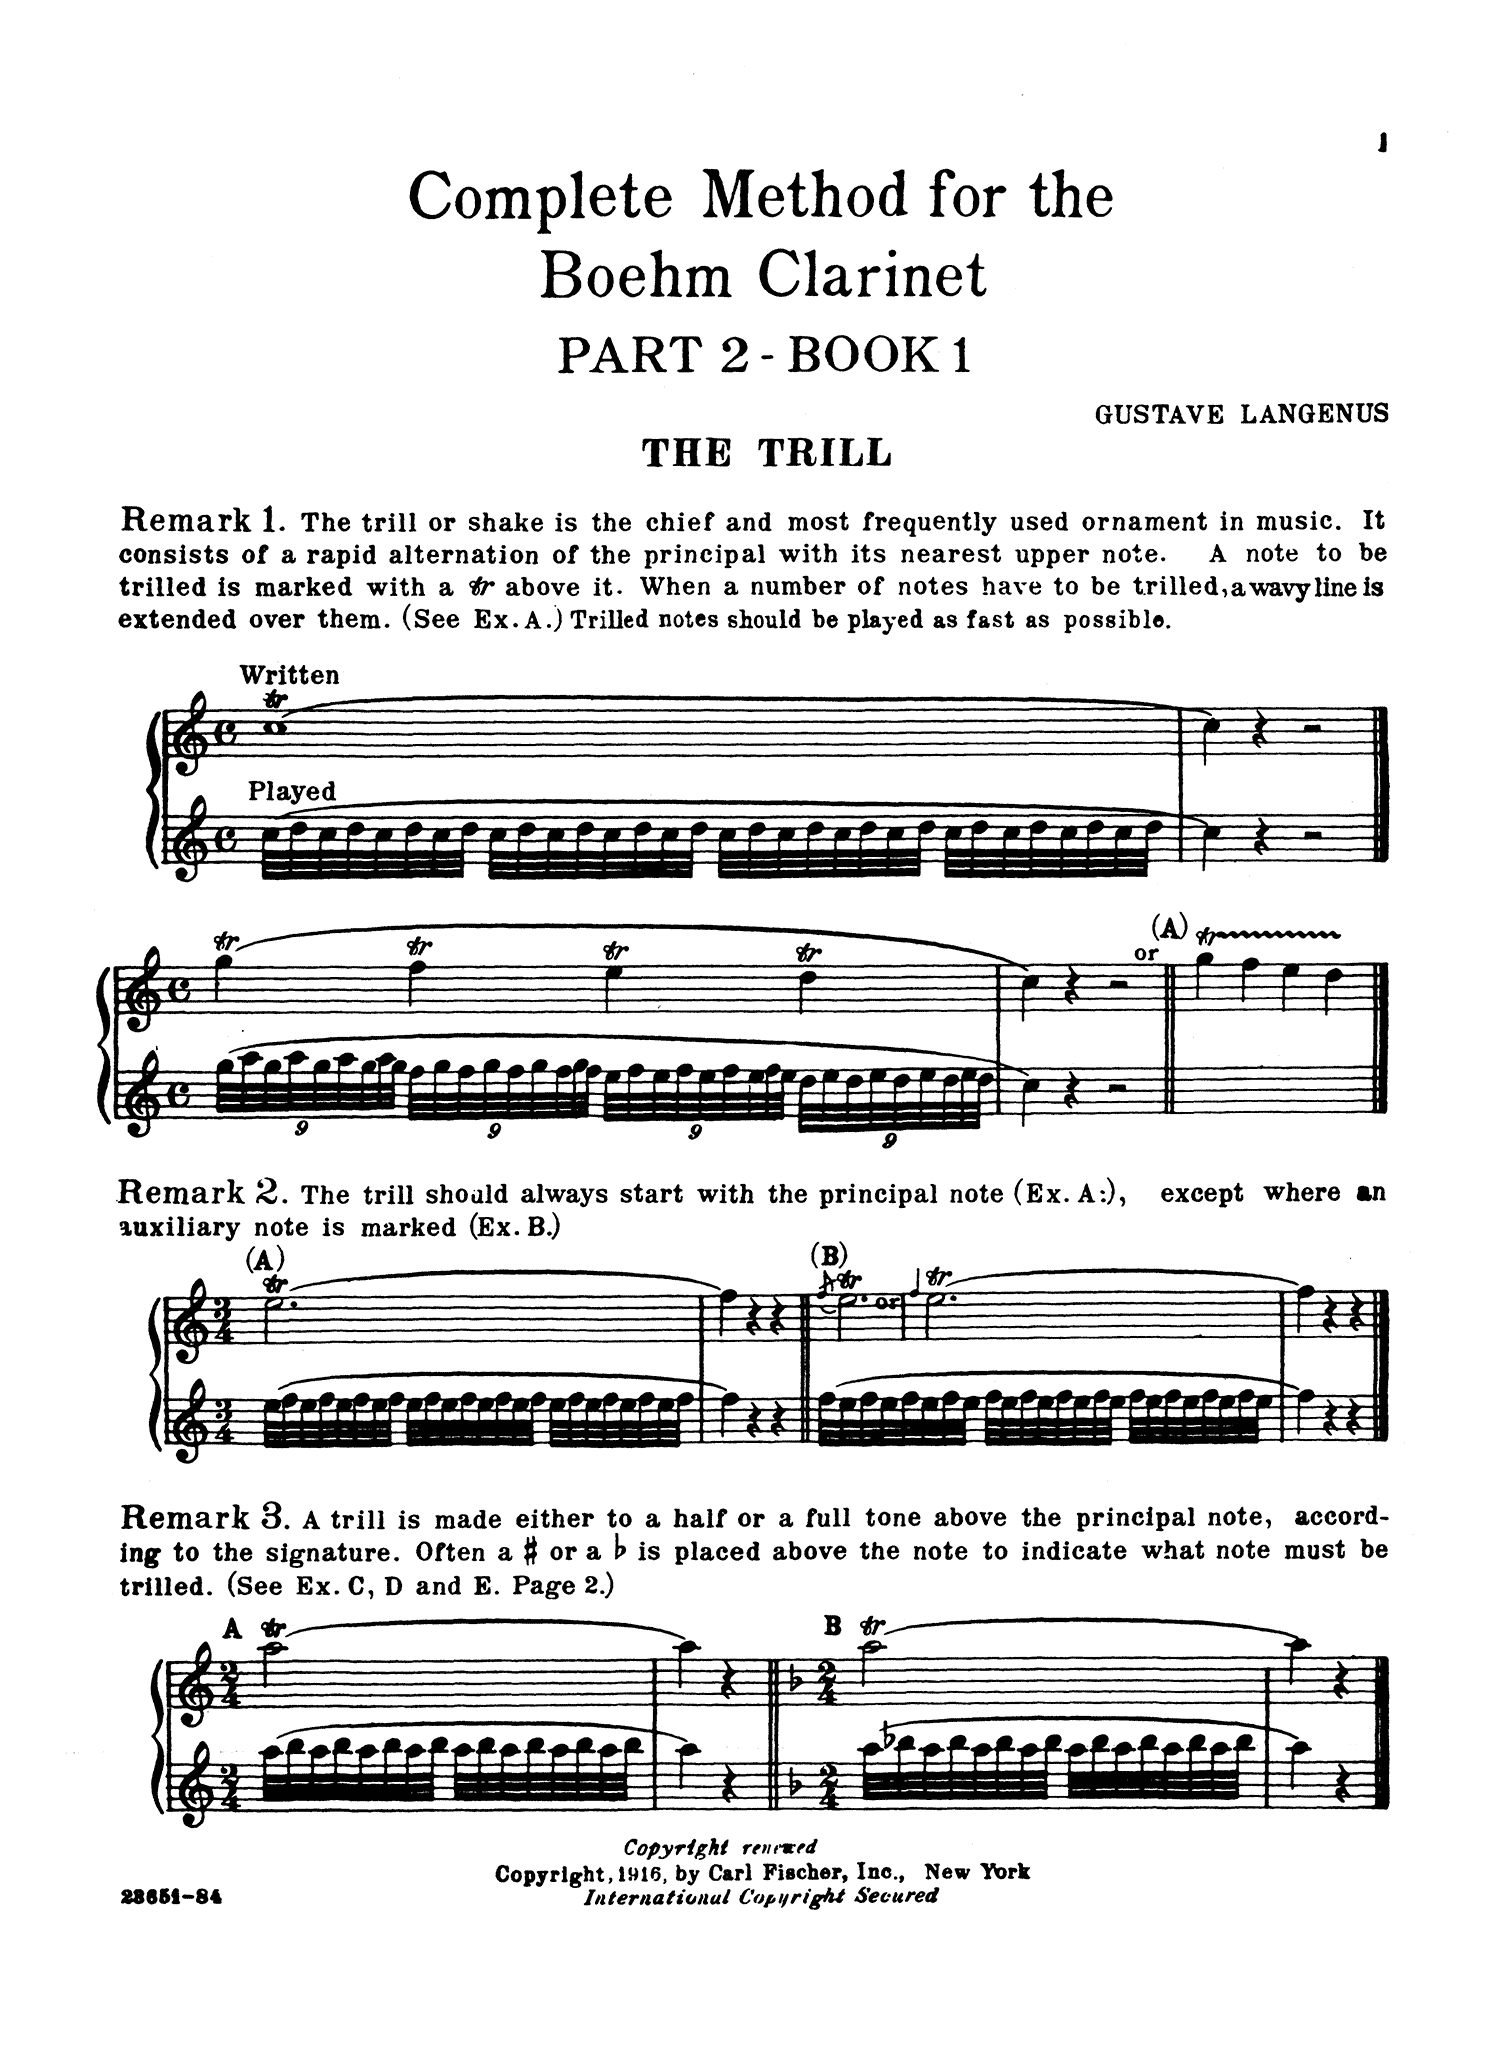 Complete Method for the Clarinet, Book 2 Page 1